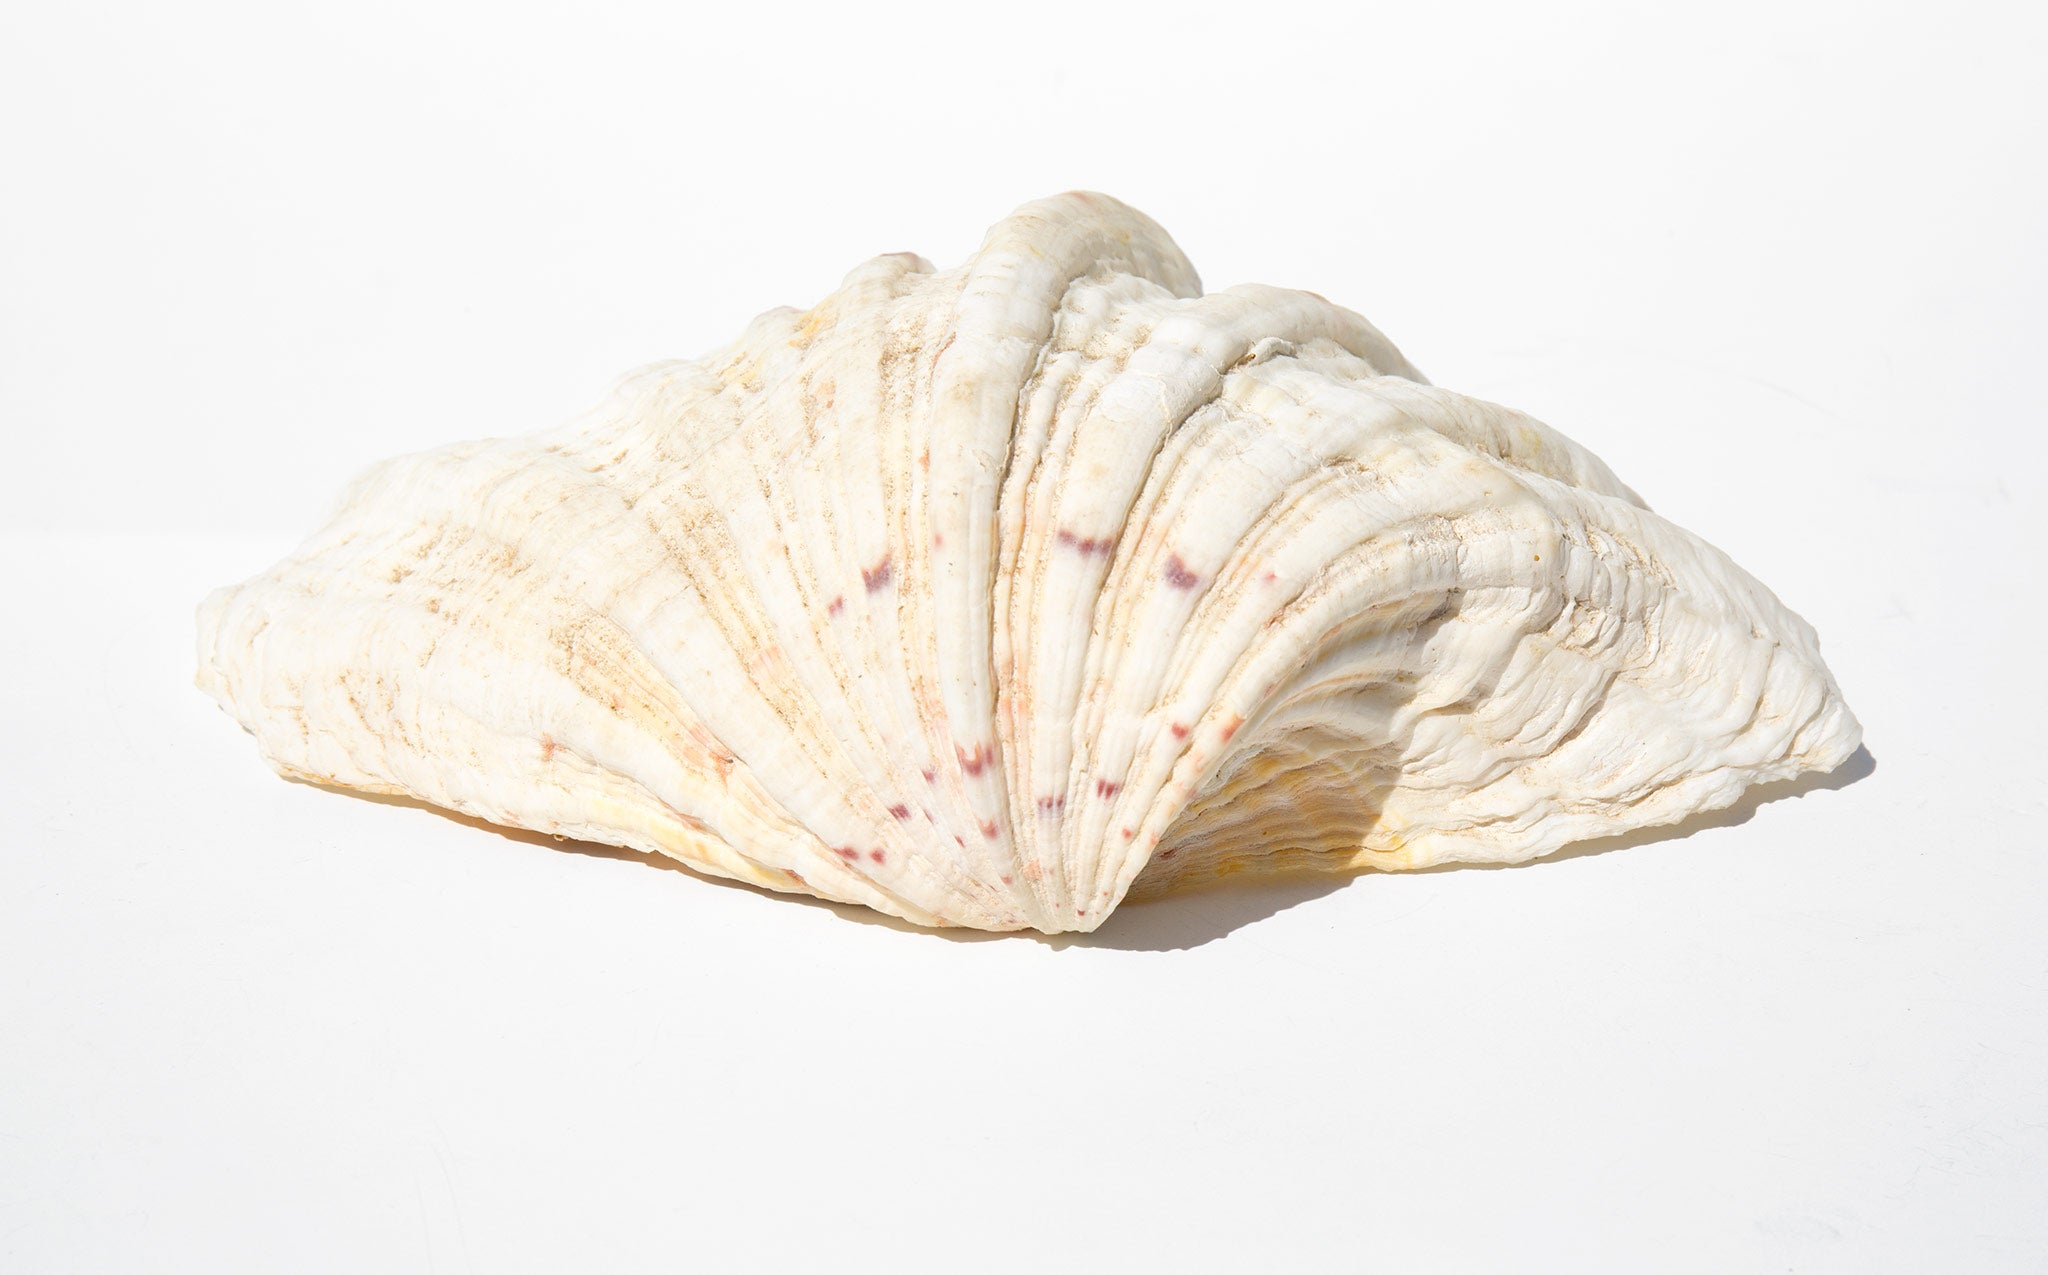 Dappled Clam Shell